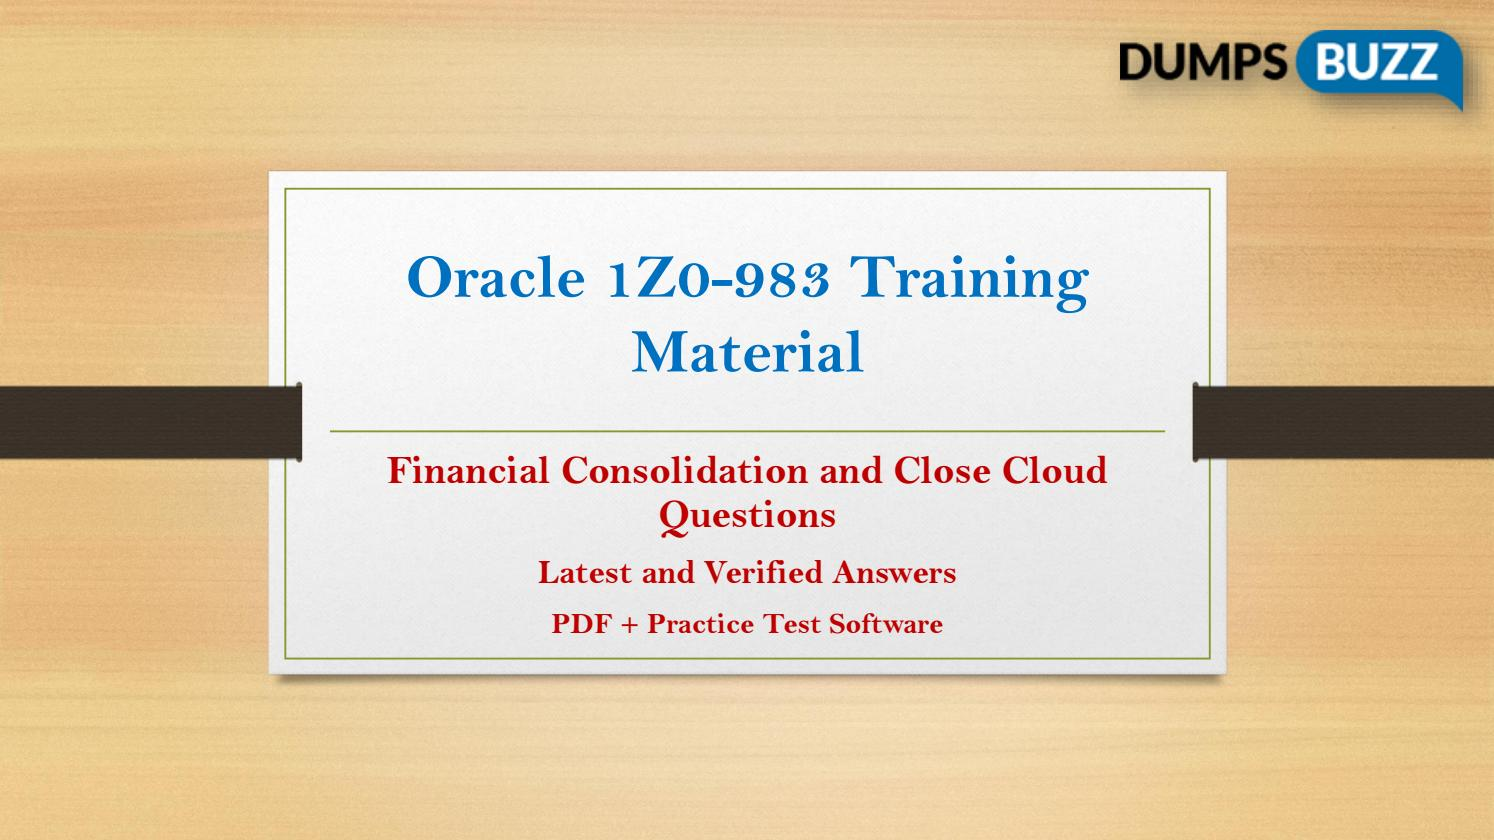 Oracle 1Z0-983 Test vce questions For Beginners and Everyone